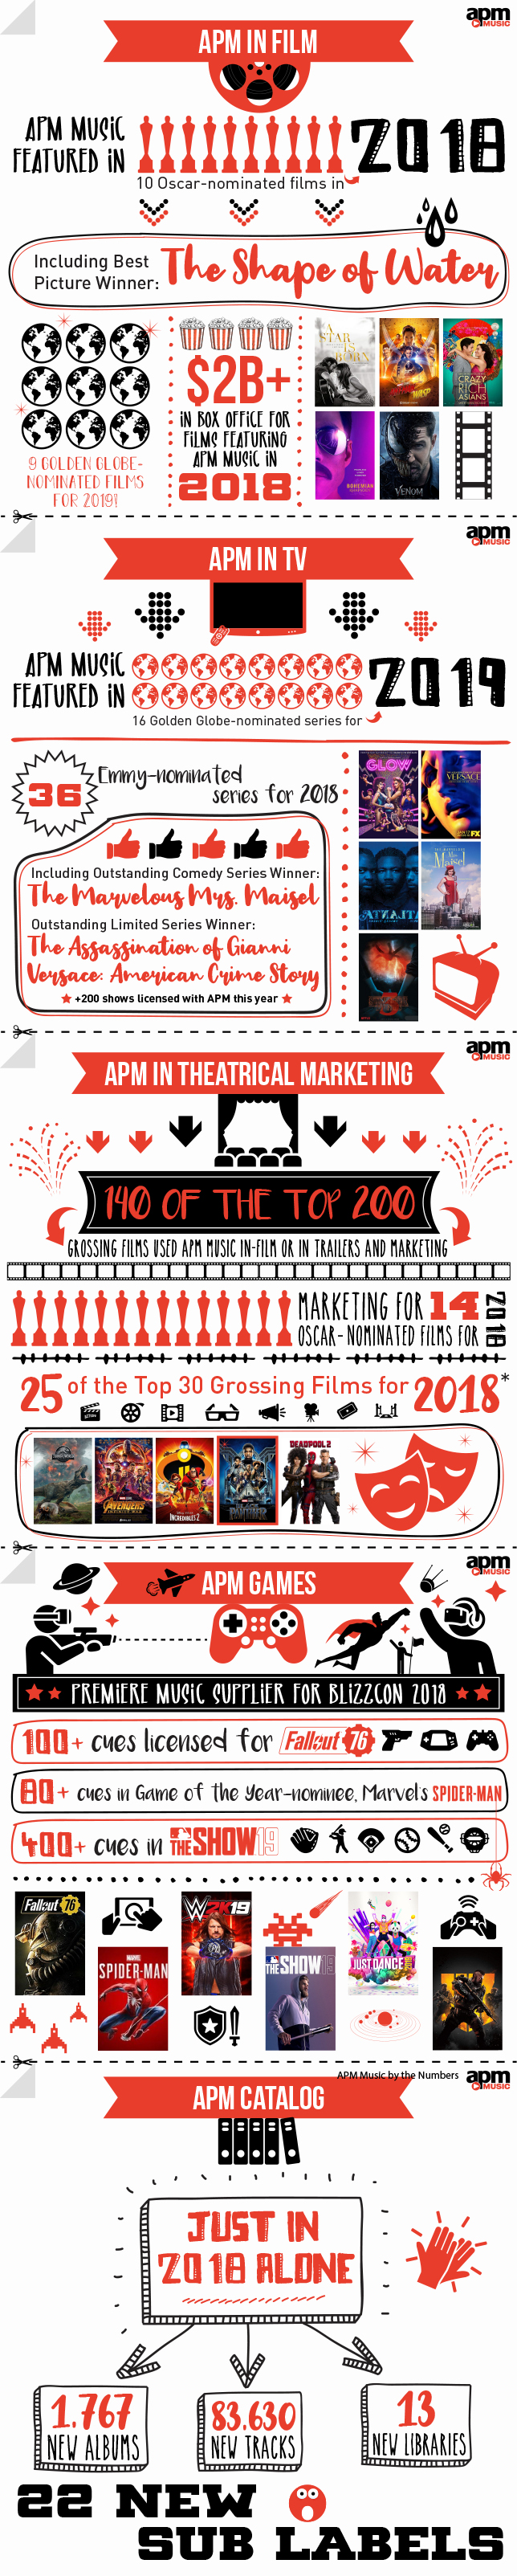 APM By The Numbers 2018 Infographic